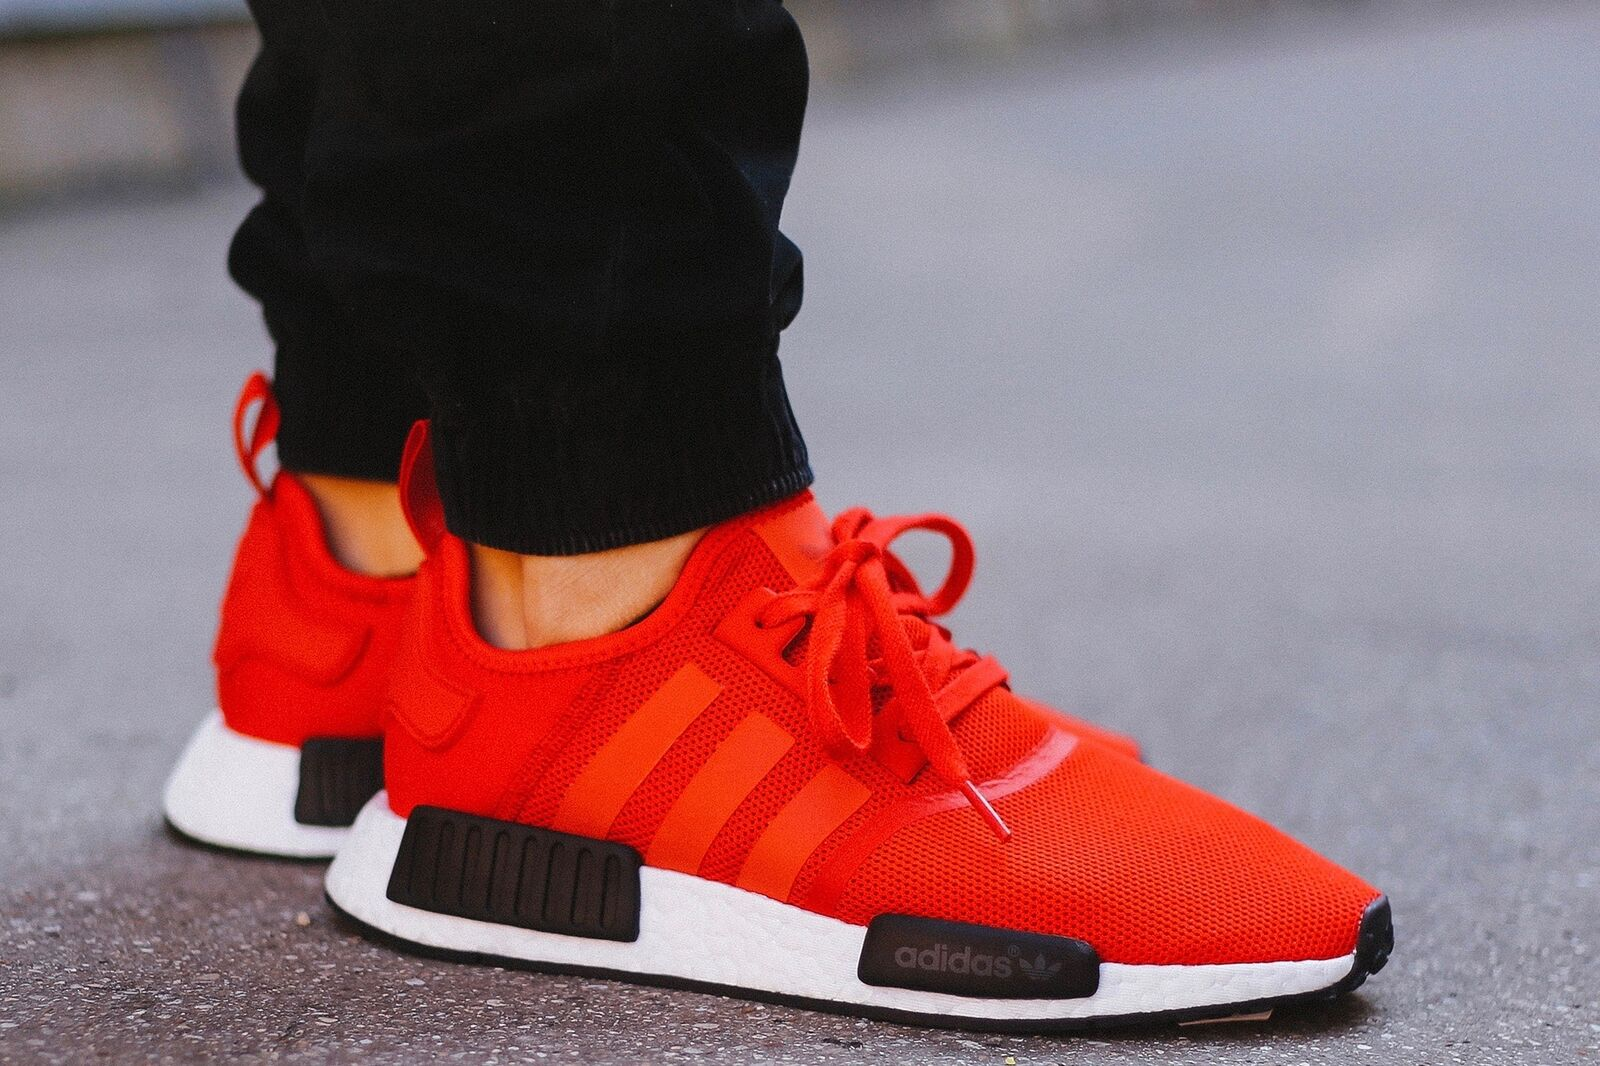 Adidas Originals NMD_R1 Boost Clear Red Black White Bred Running Men's BB1970